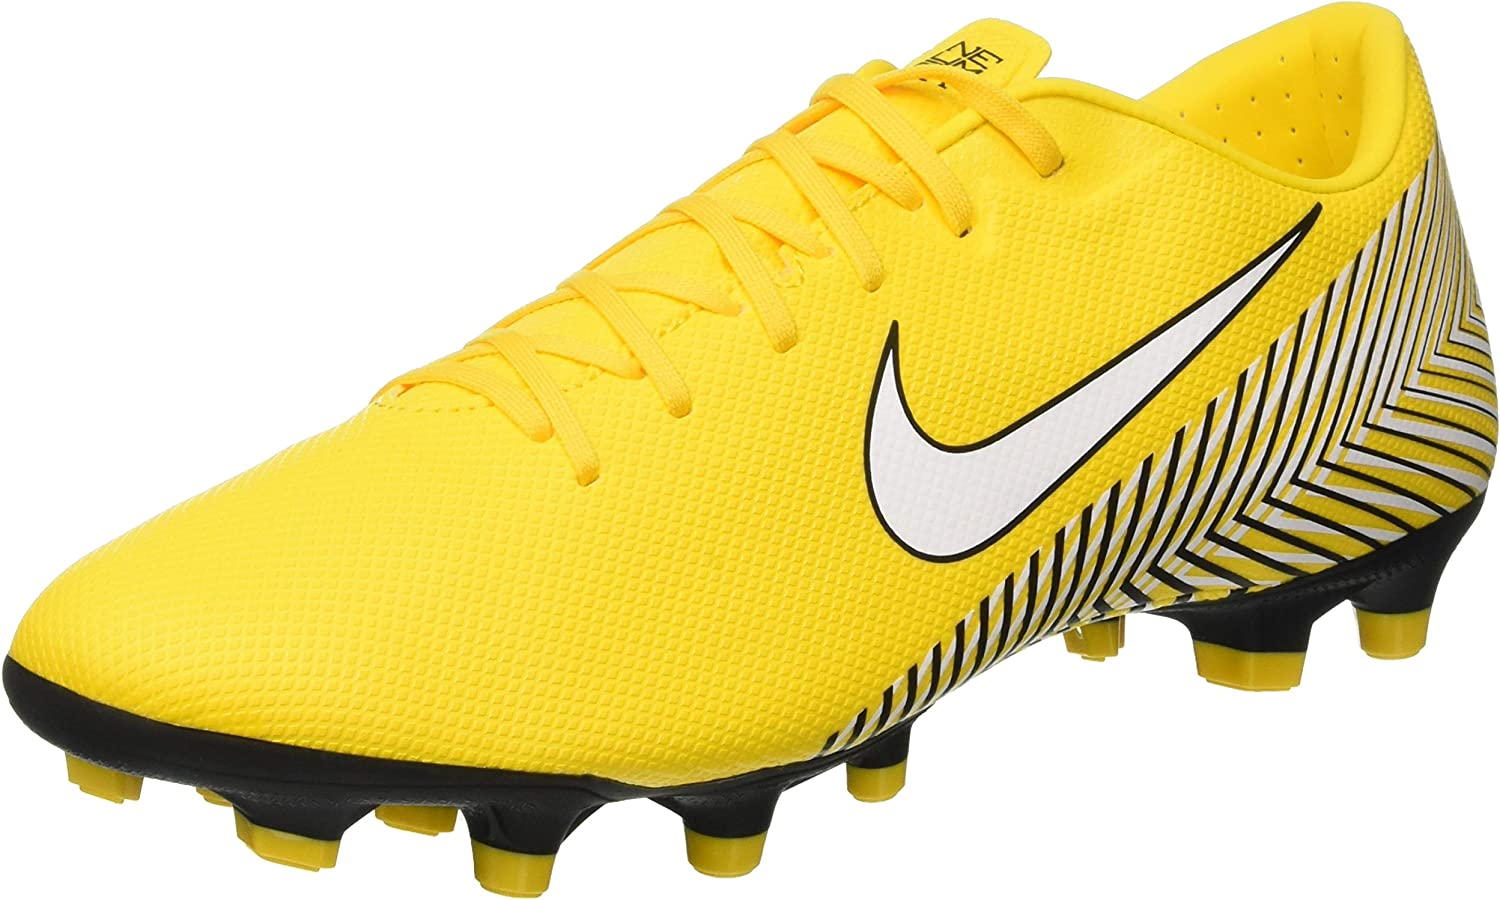 Nike Unisex Adults' Vapor 12 Academy NJR Mg Footbal shoes